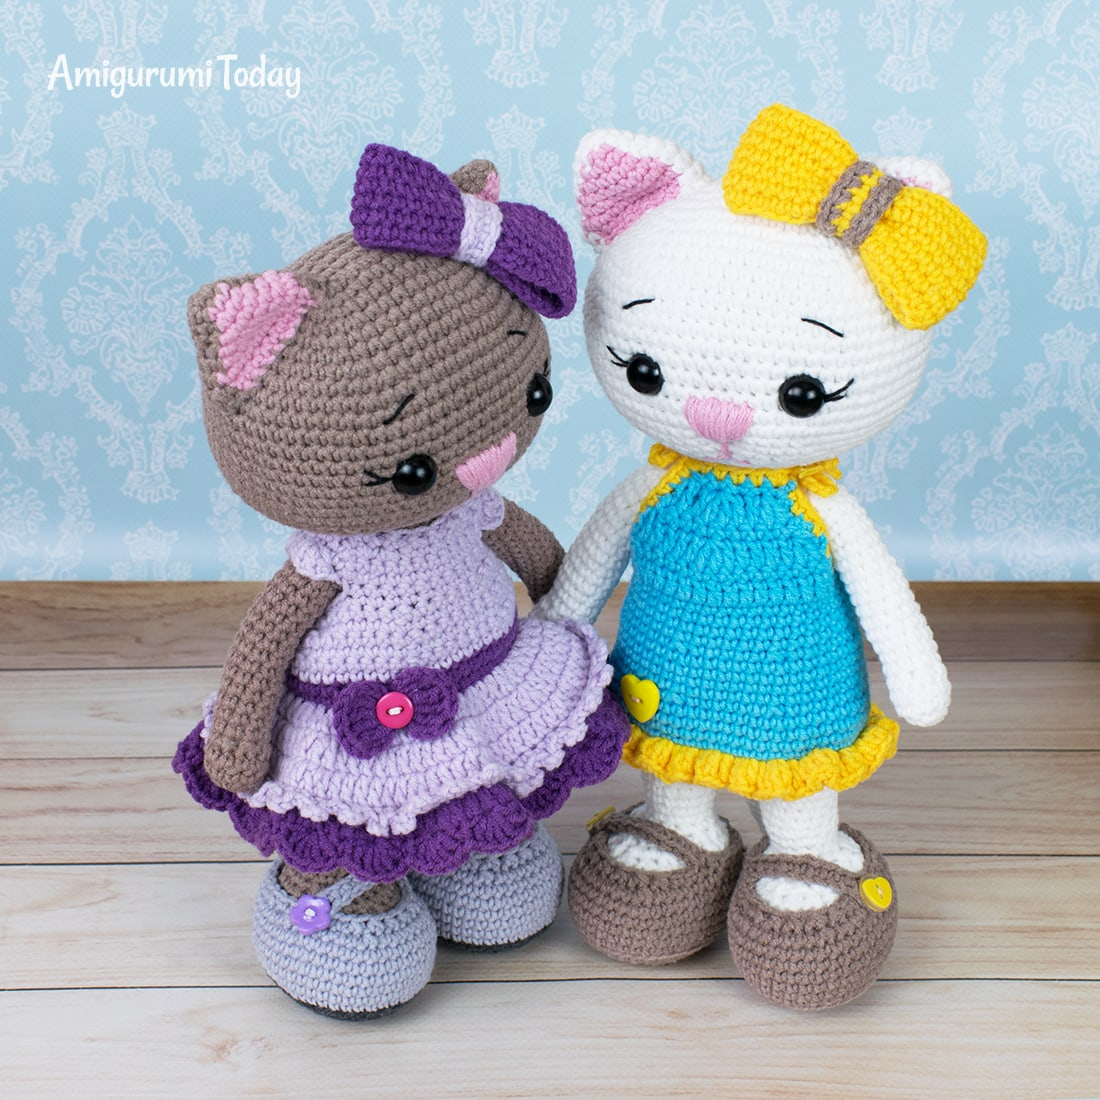 Amigurumi cat dolls - Free crochet patterns by Amigurumi Today